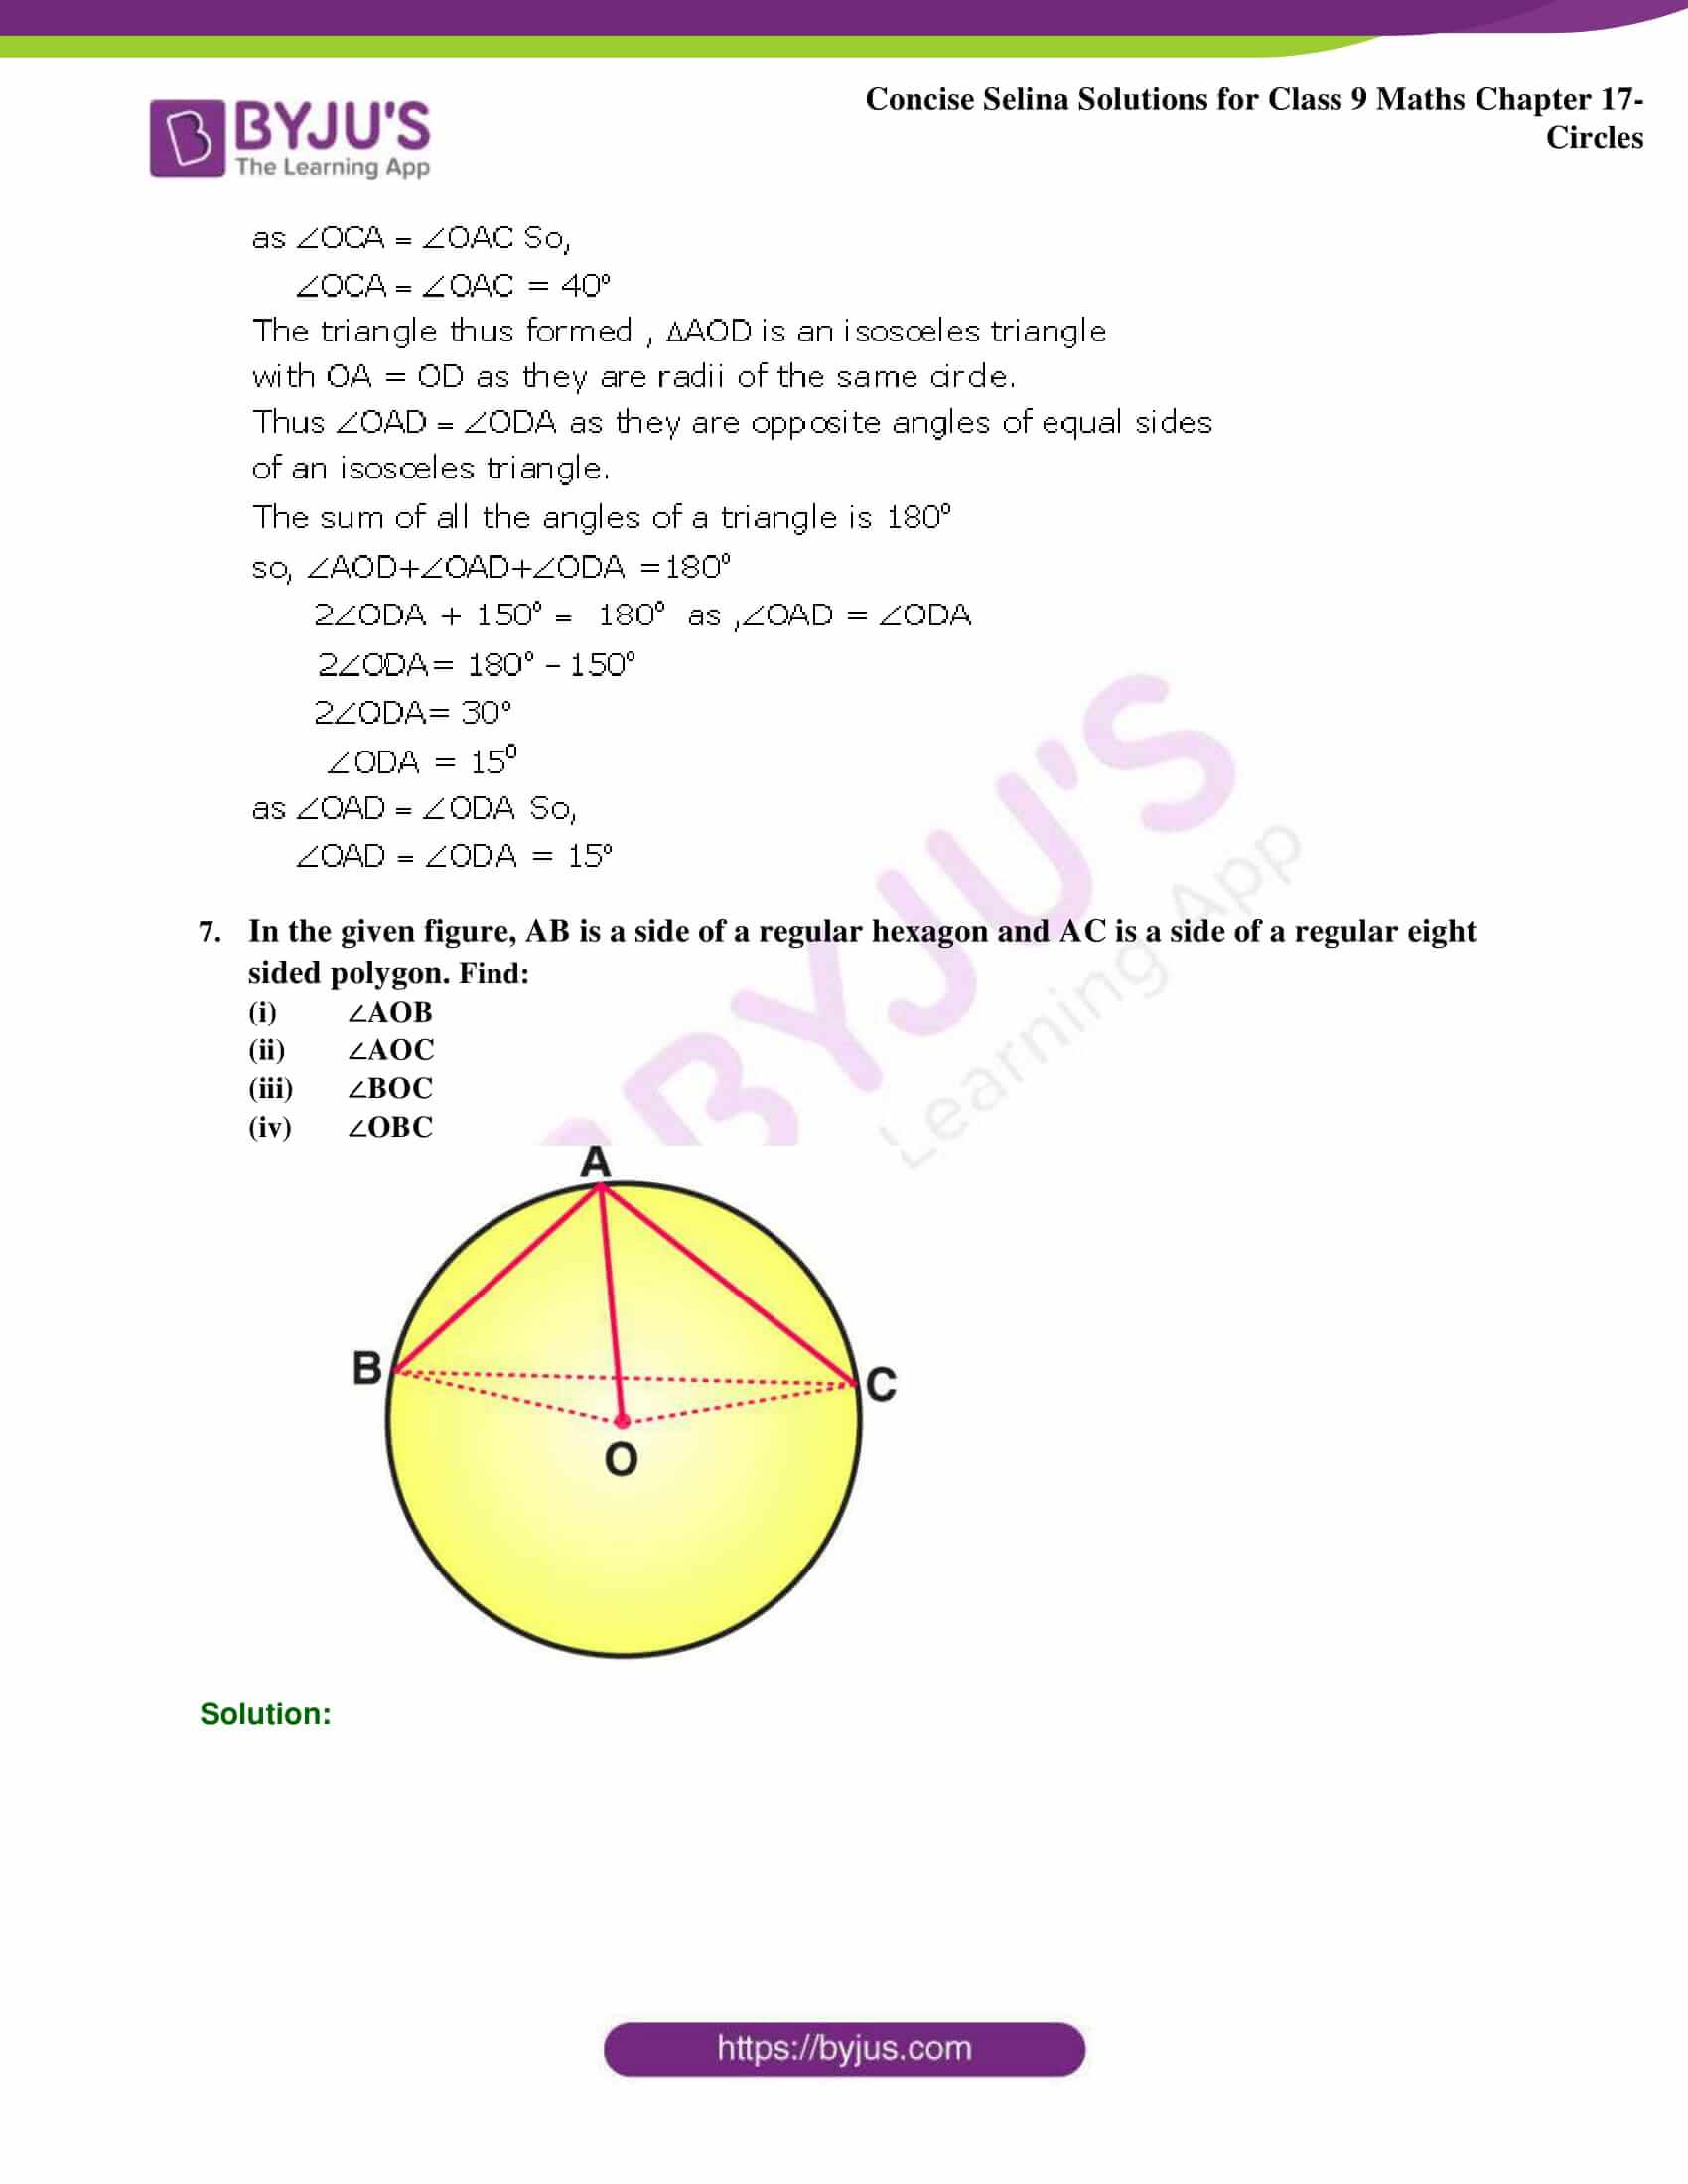 Concise Selina Solutions Class 9 Maths Chapter 17 Circles part 26